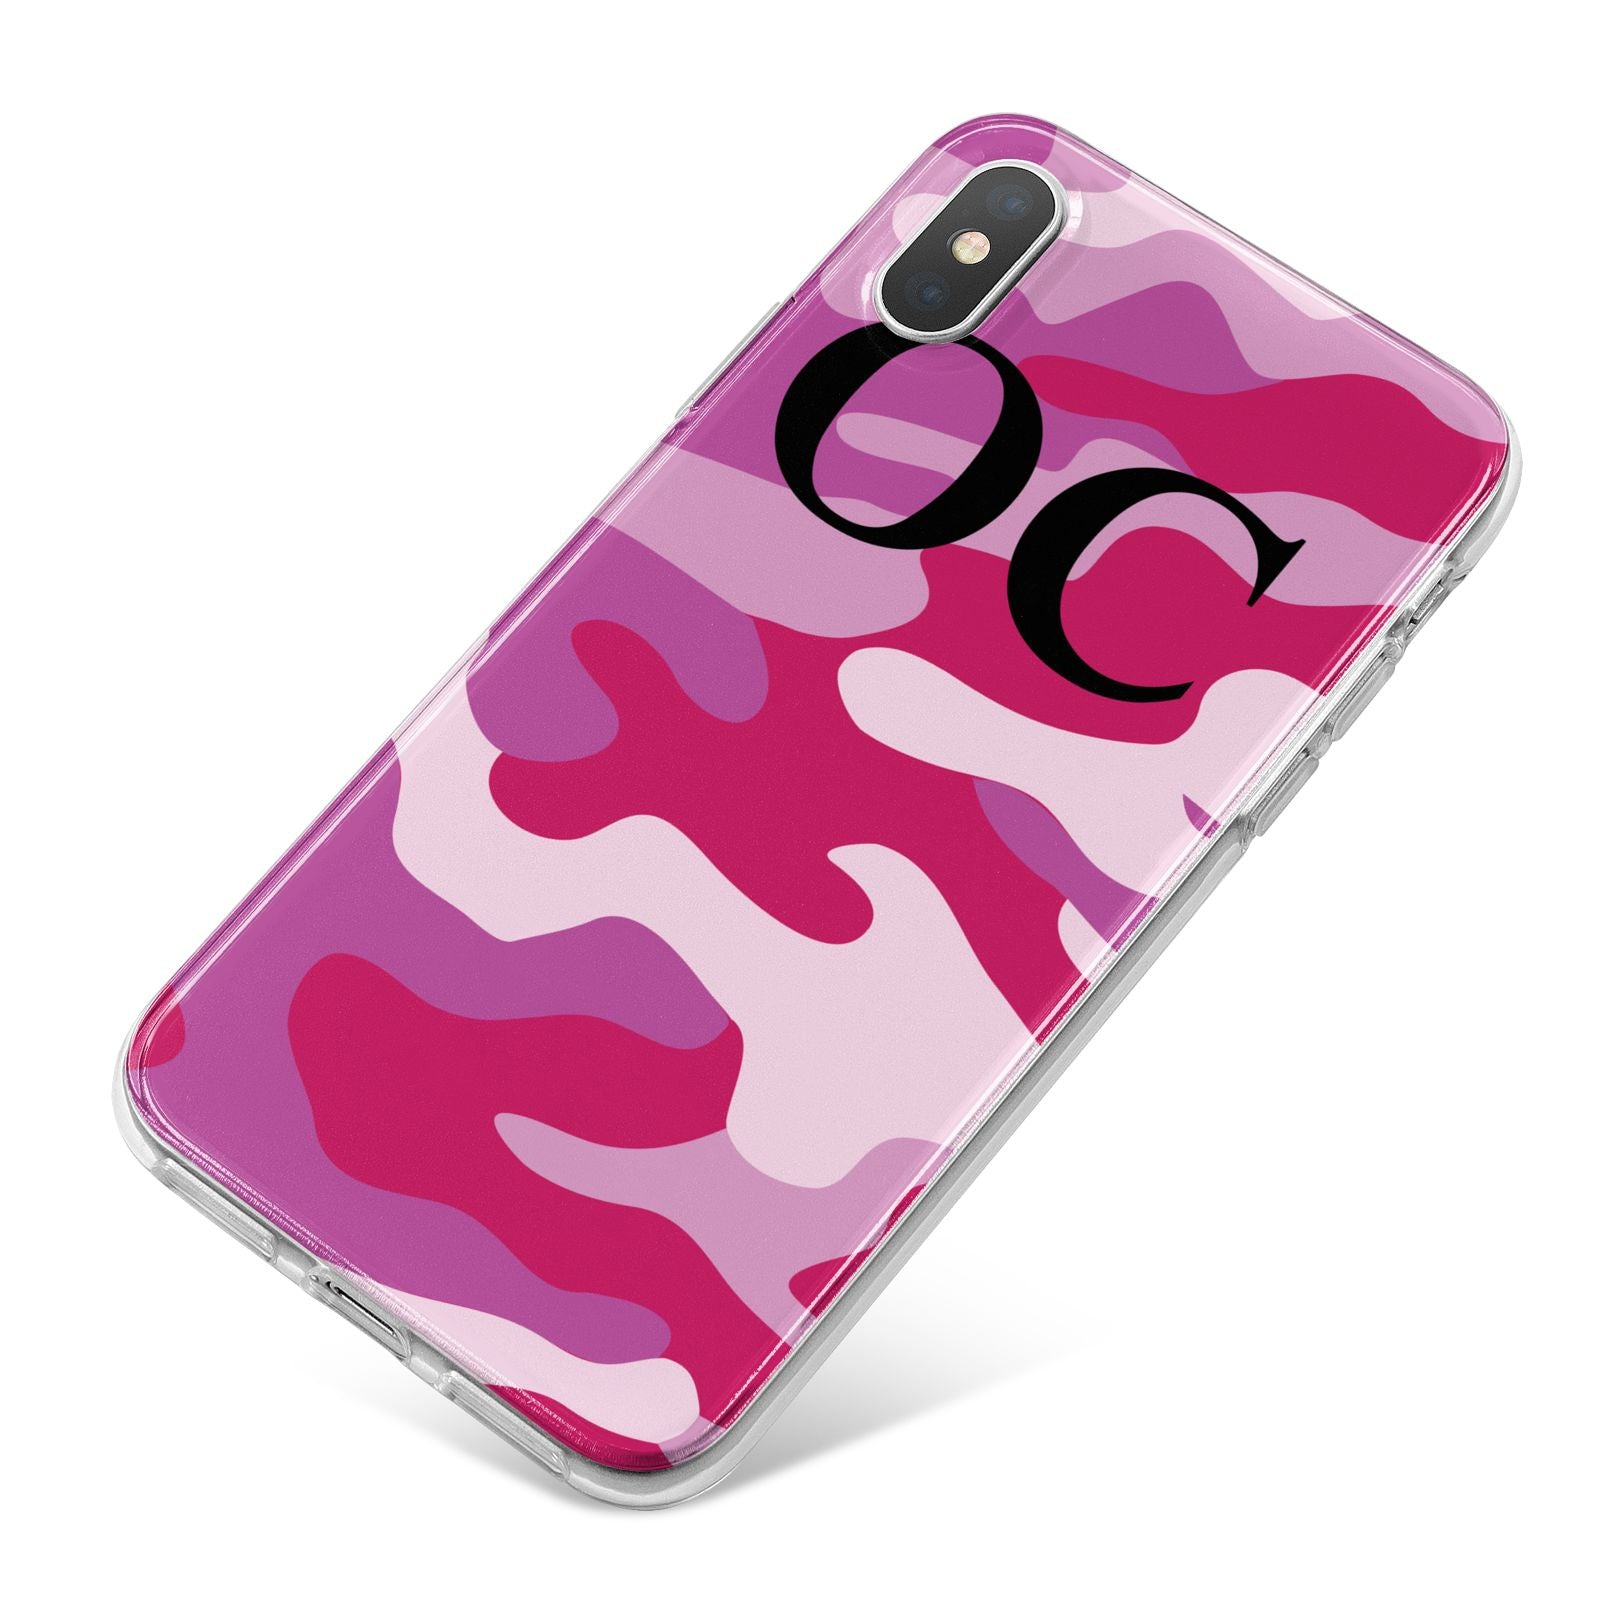 Camouflage Personalised iPhone X Bumper Case on Silver iPhone